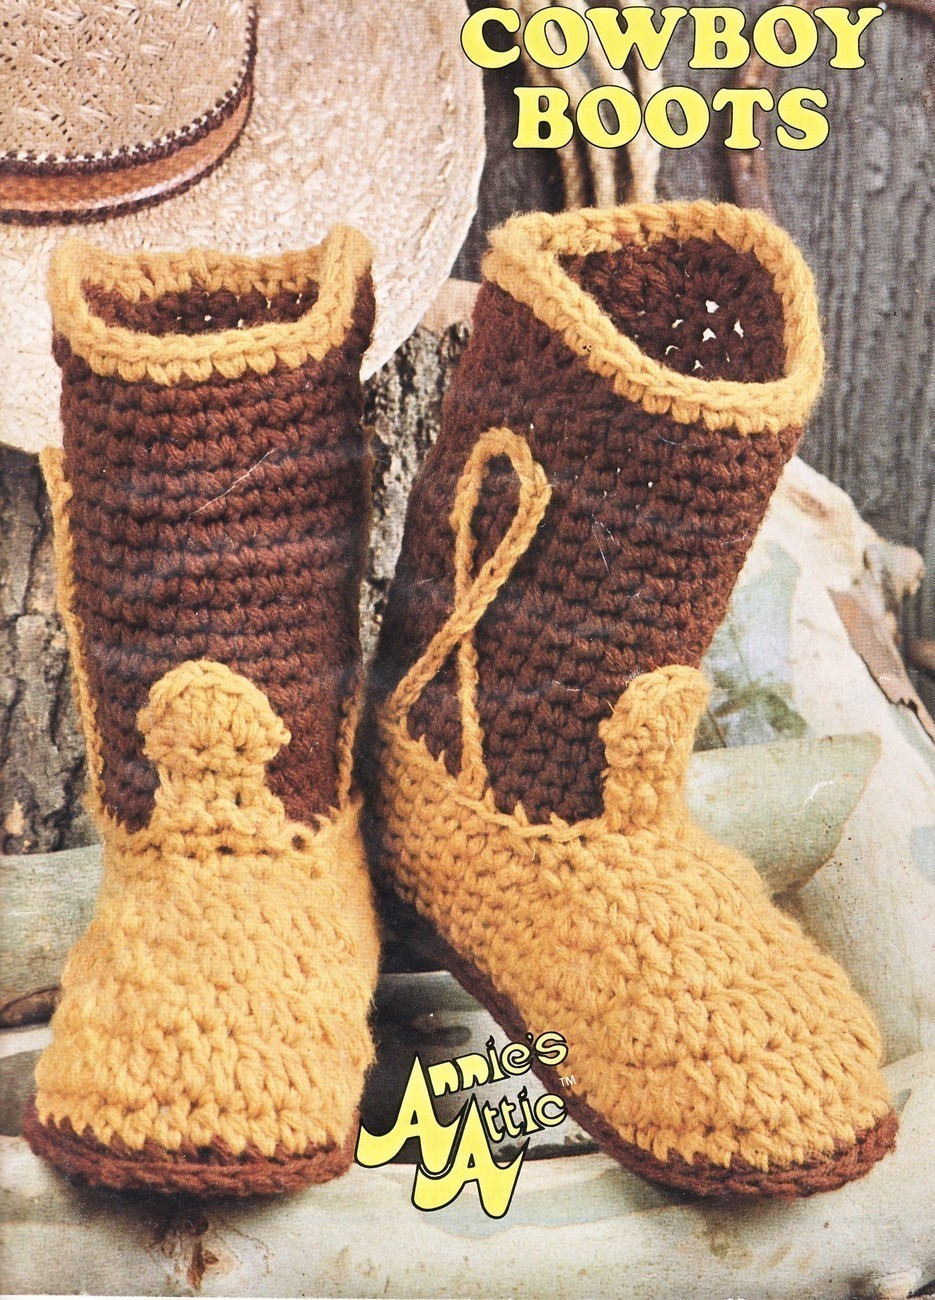 Crochet Cowboy Boots Unique Big Foot Boutique Cowboy Boots Crochet Pattern 7 Sizes Of Marvelous 49 Pictures Crochet Cowboy Boots